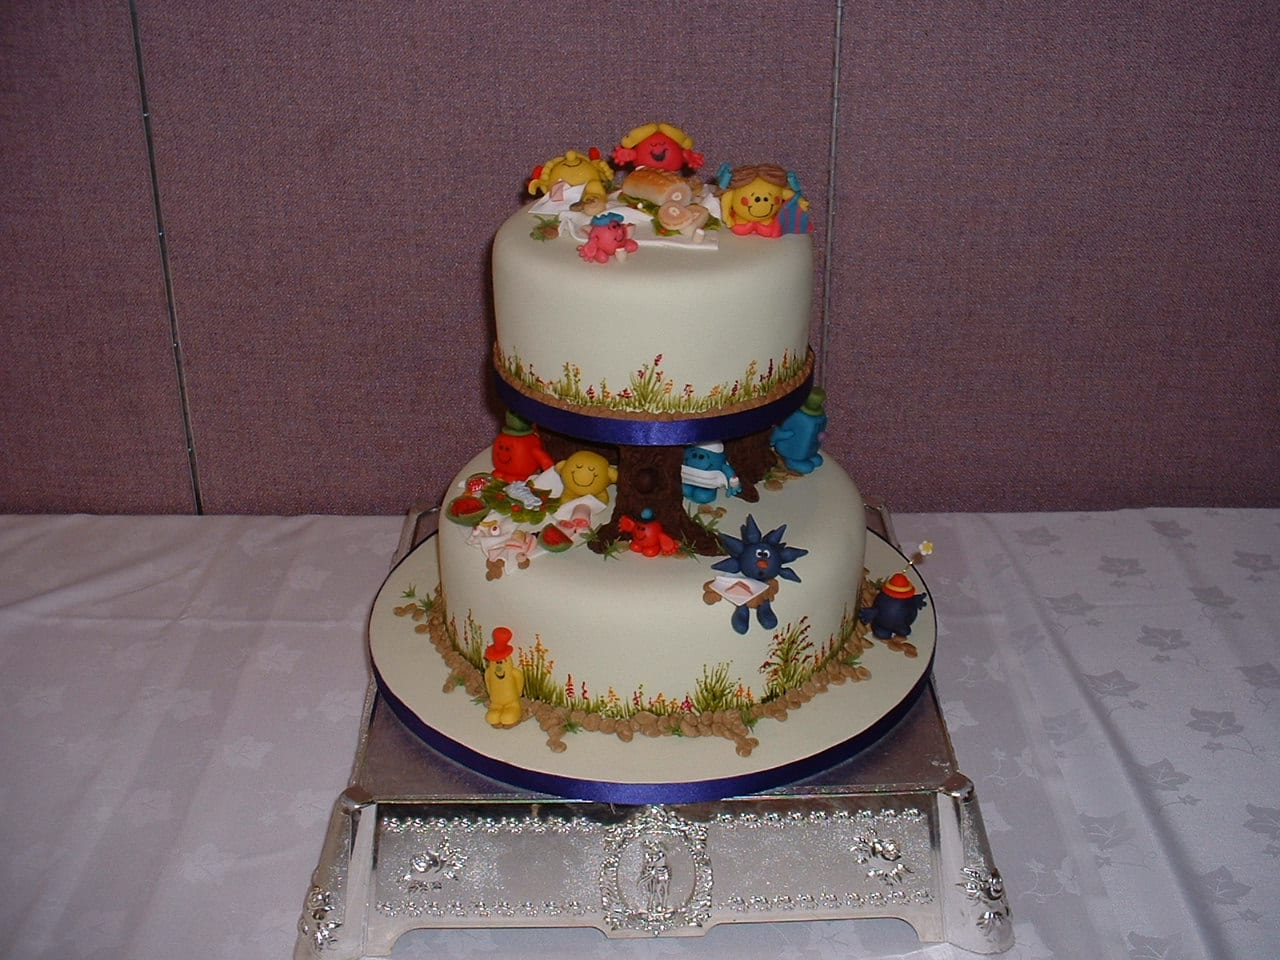 Christening Cake covered in Mr Men characters